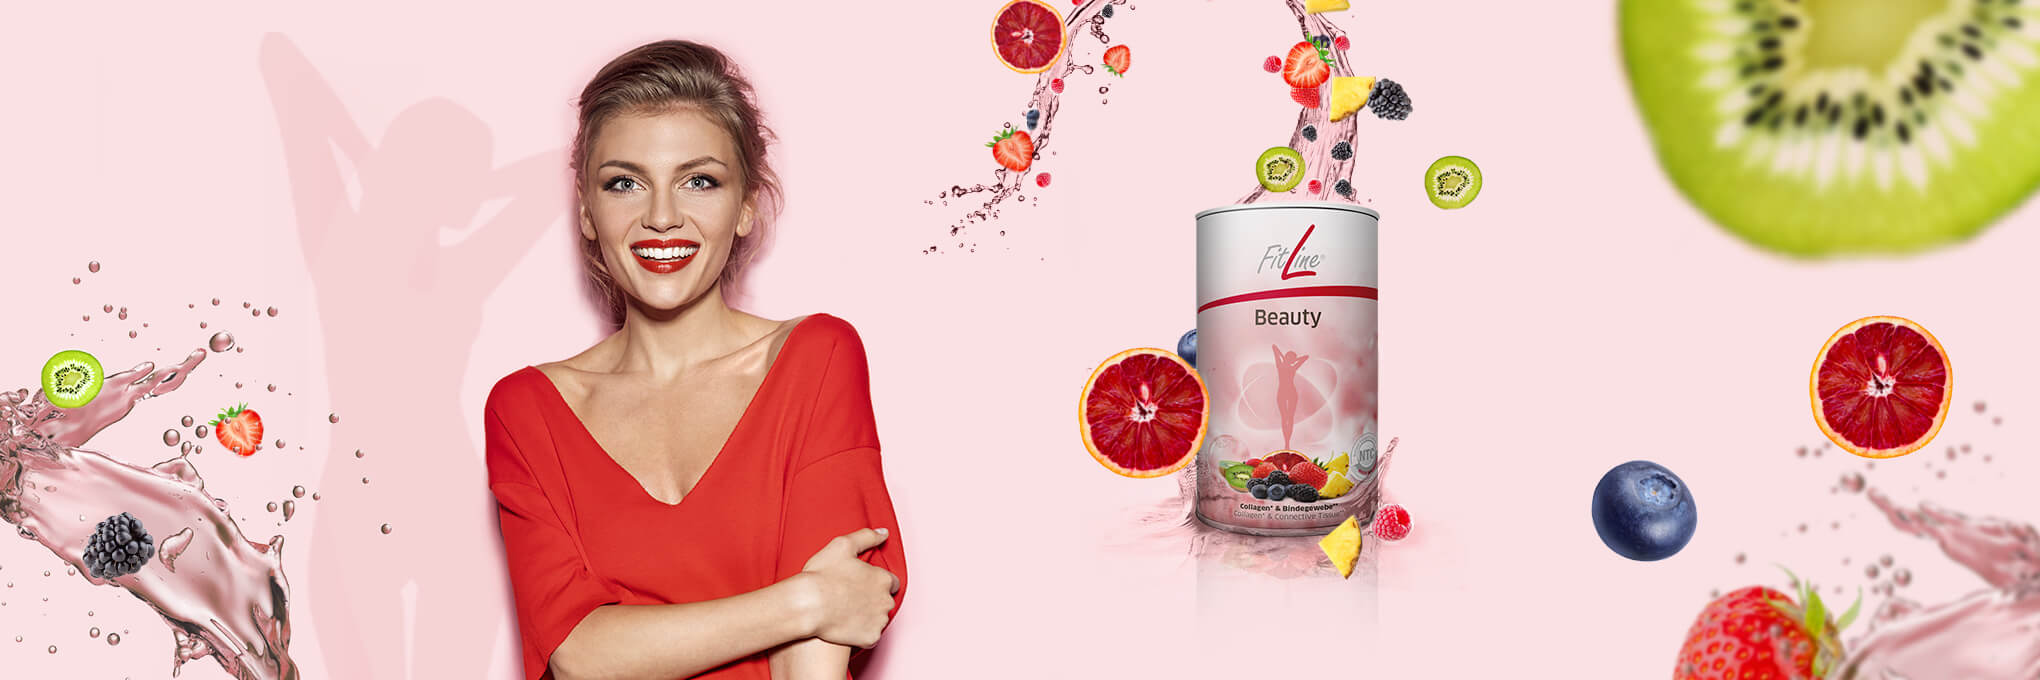 Hyaluronic Acid & Collagen – The Secret to Youthful Skin Revealed